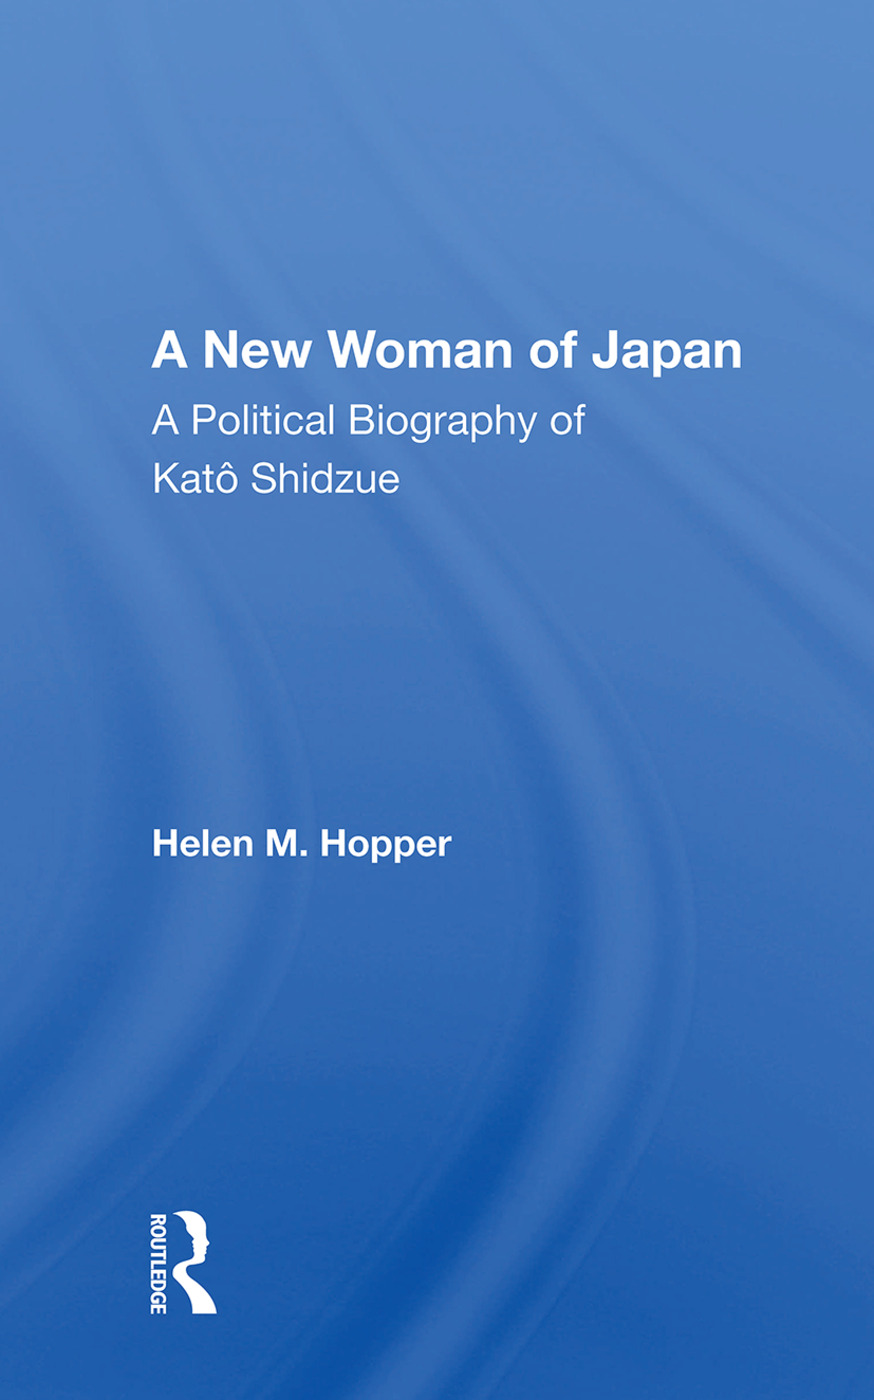 A New Woman of Japan